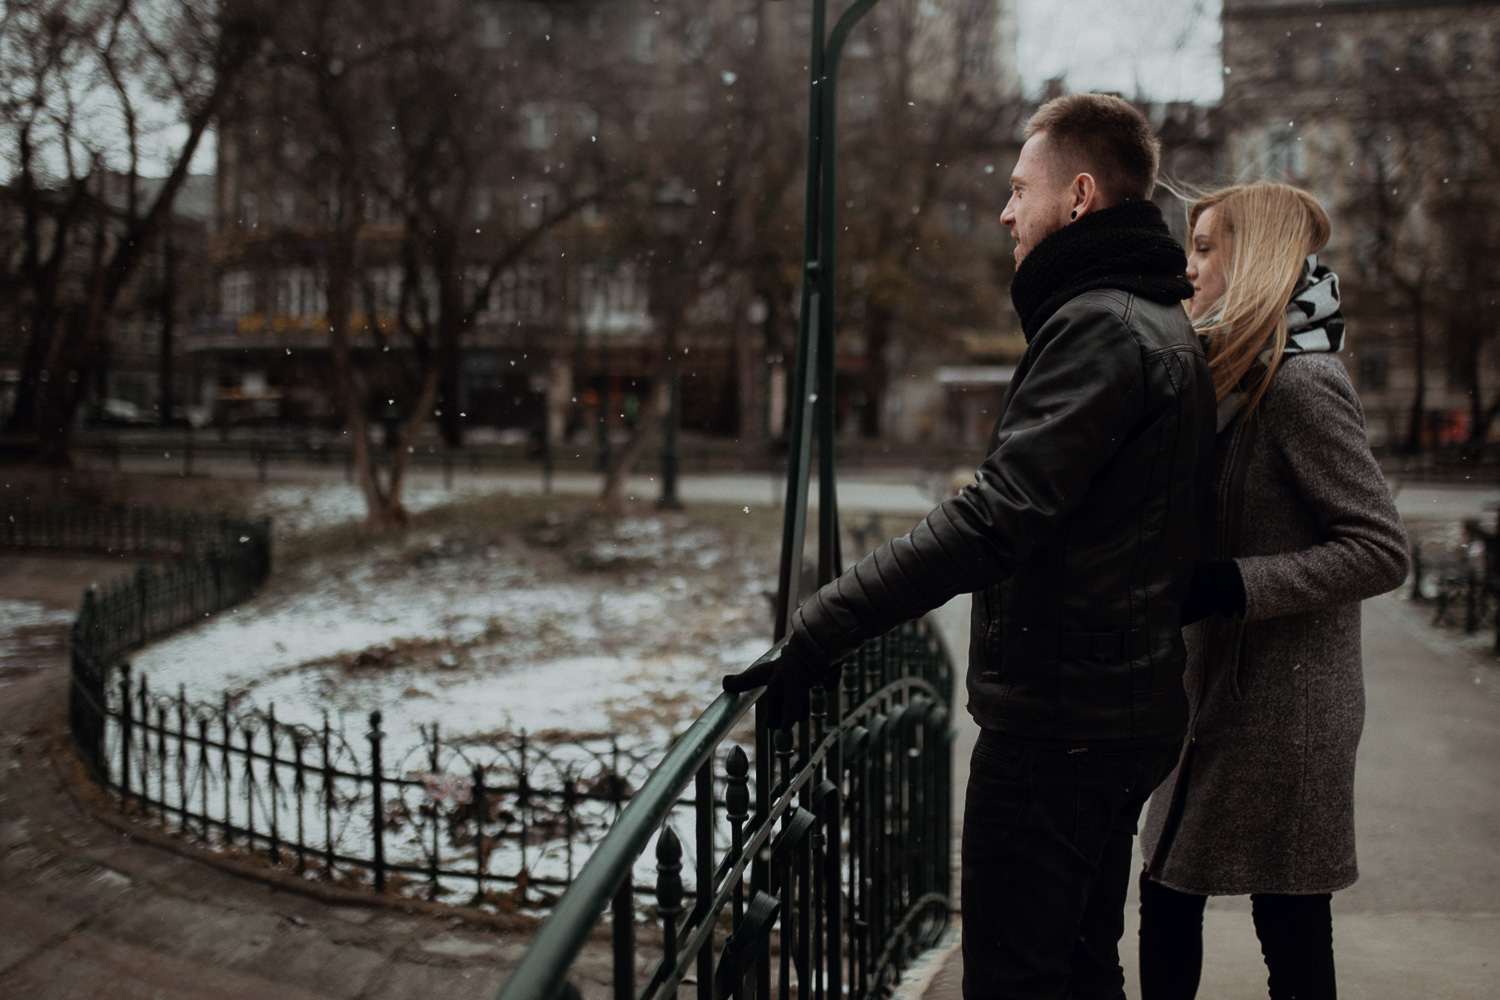 Engagement-photoshoot-in-winter-krakow-wawel-1.jpg